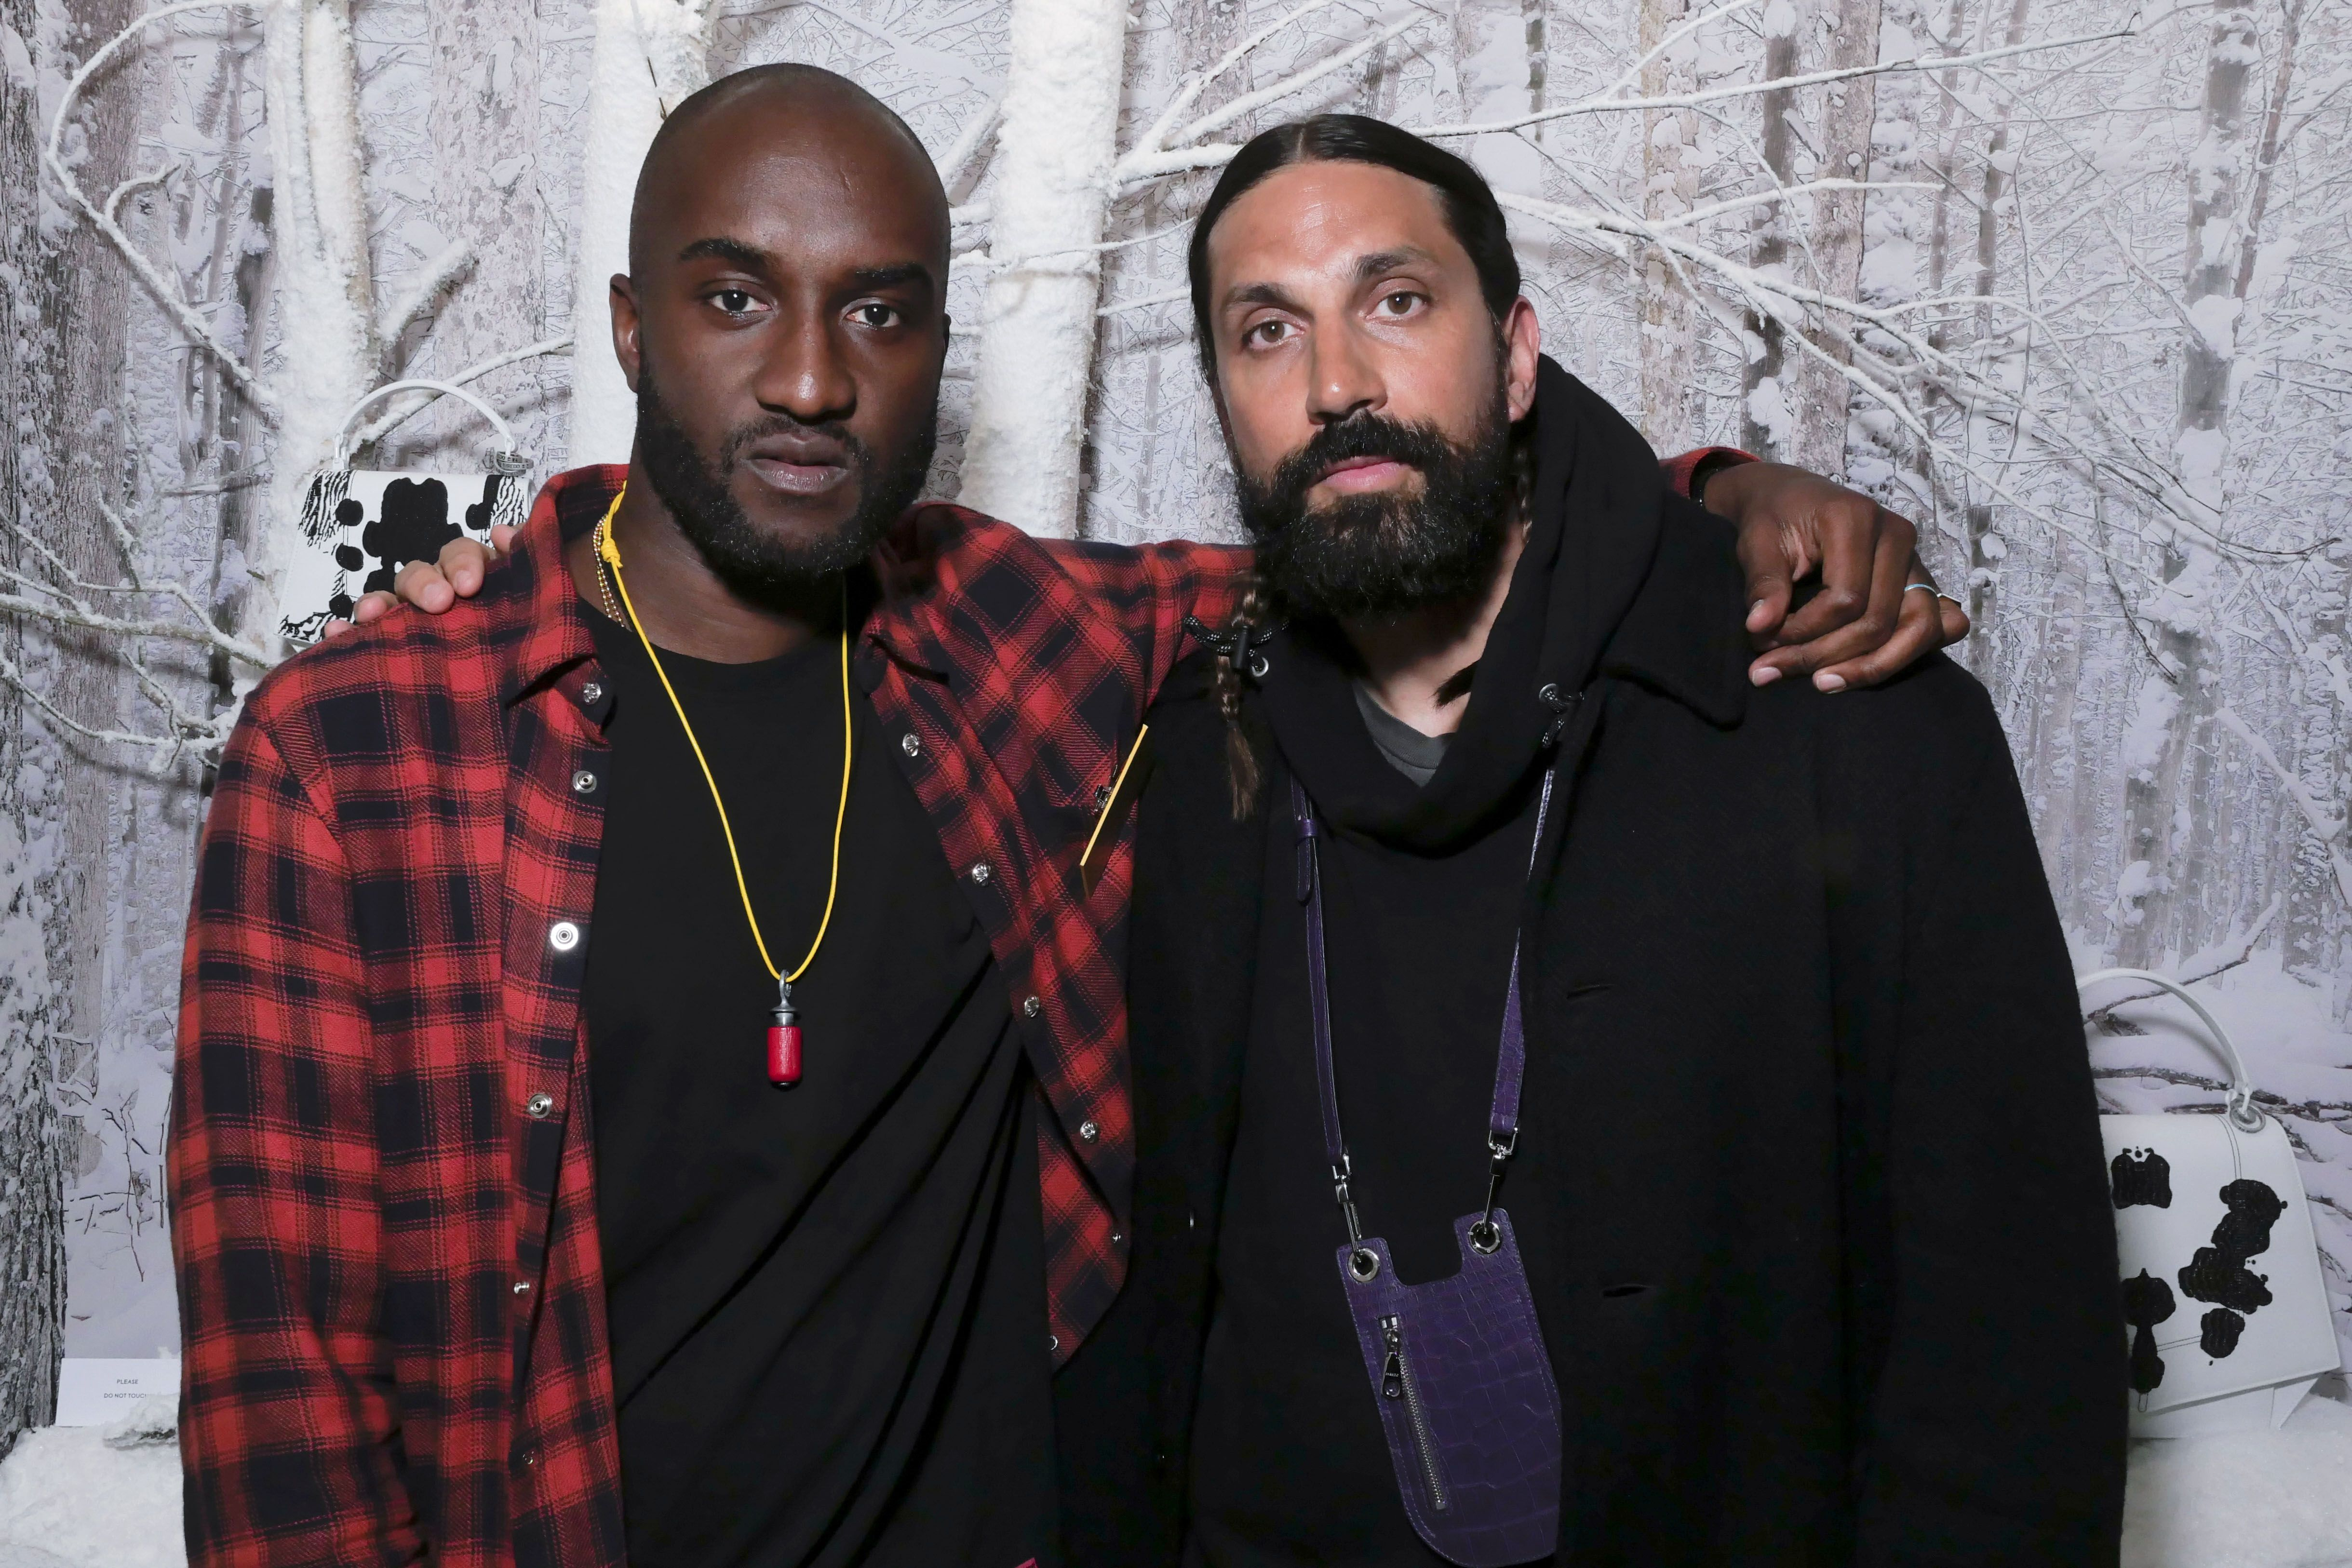 """Virgil Abloh and Ben Gorham Virgil Abloh and Ben Gorham at Byredo's showcase of their """"Rare Byrds Of A Feather"""" collection during Paris Fashion Week on February 28."""